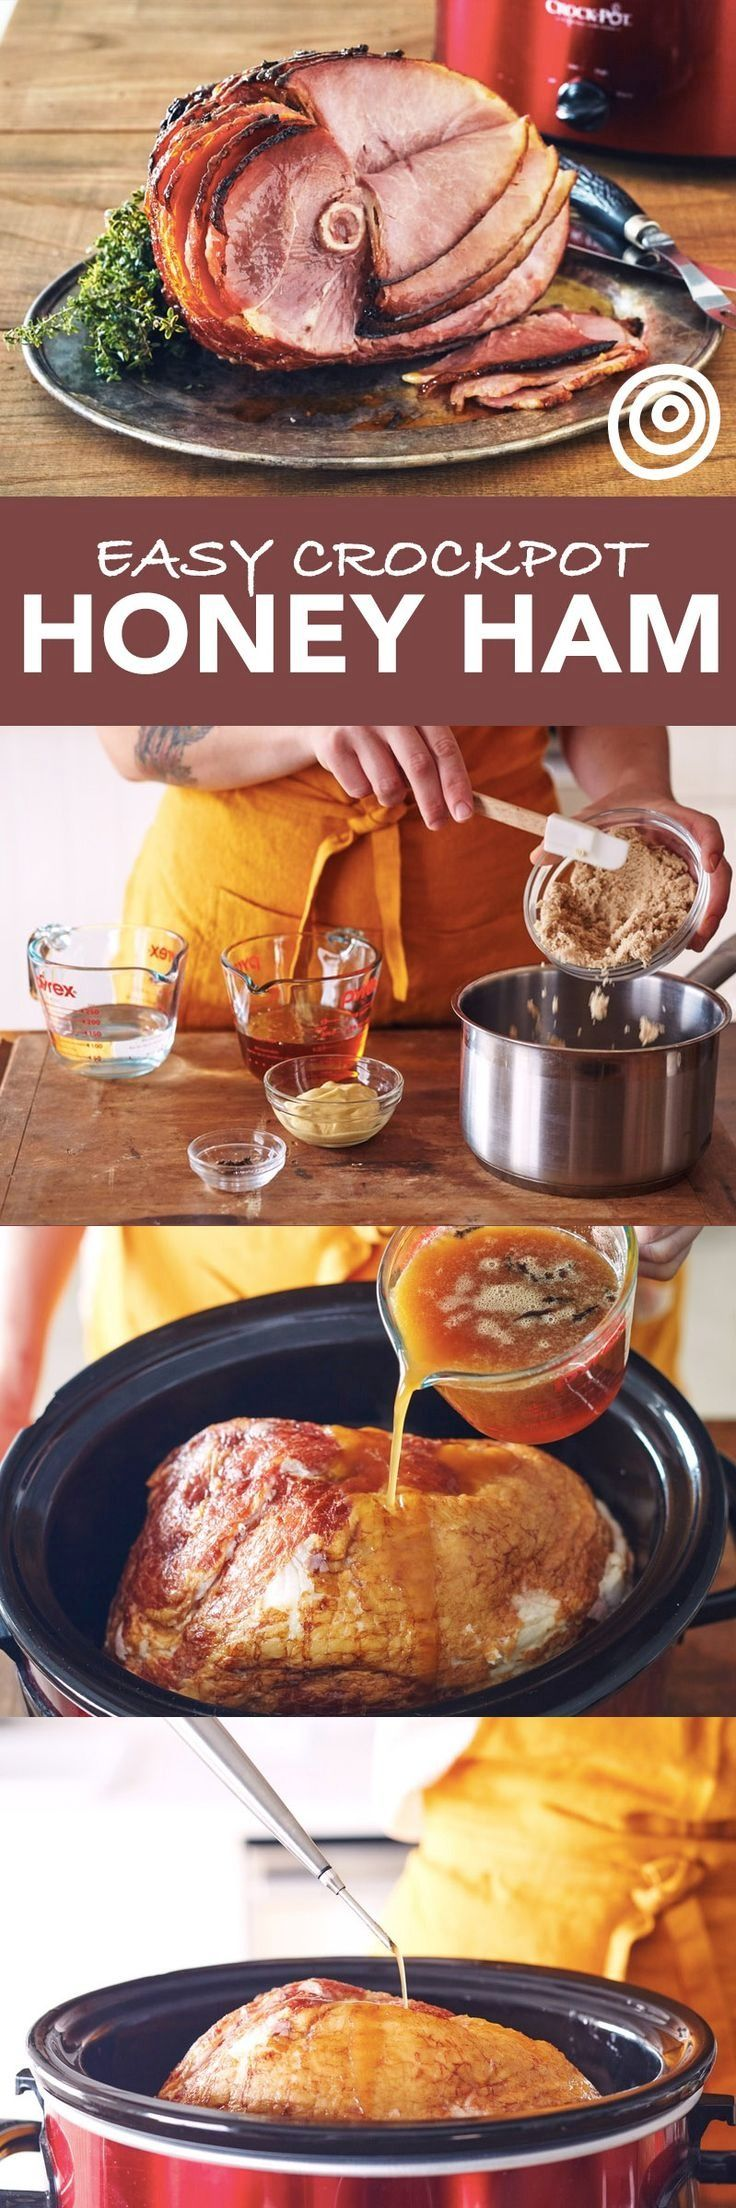 Honey Ham in the Slow Cooker, a Step-by-Step Recipe.